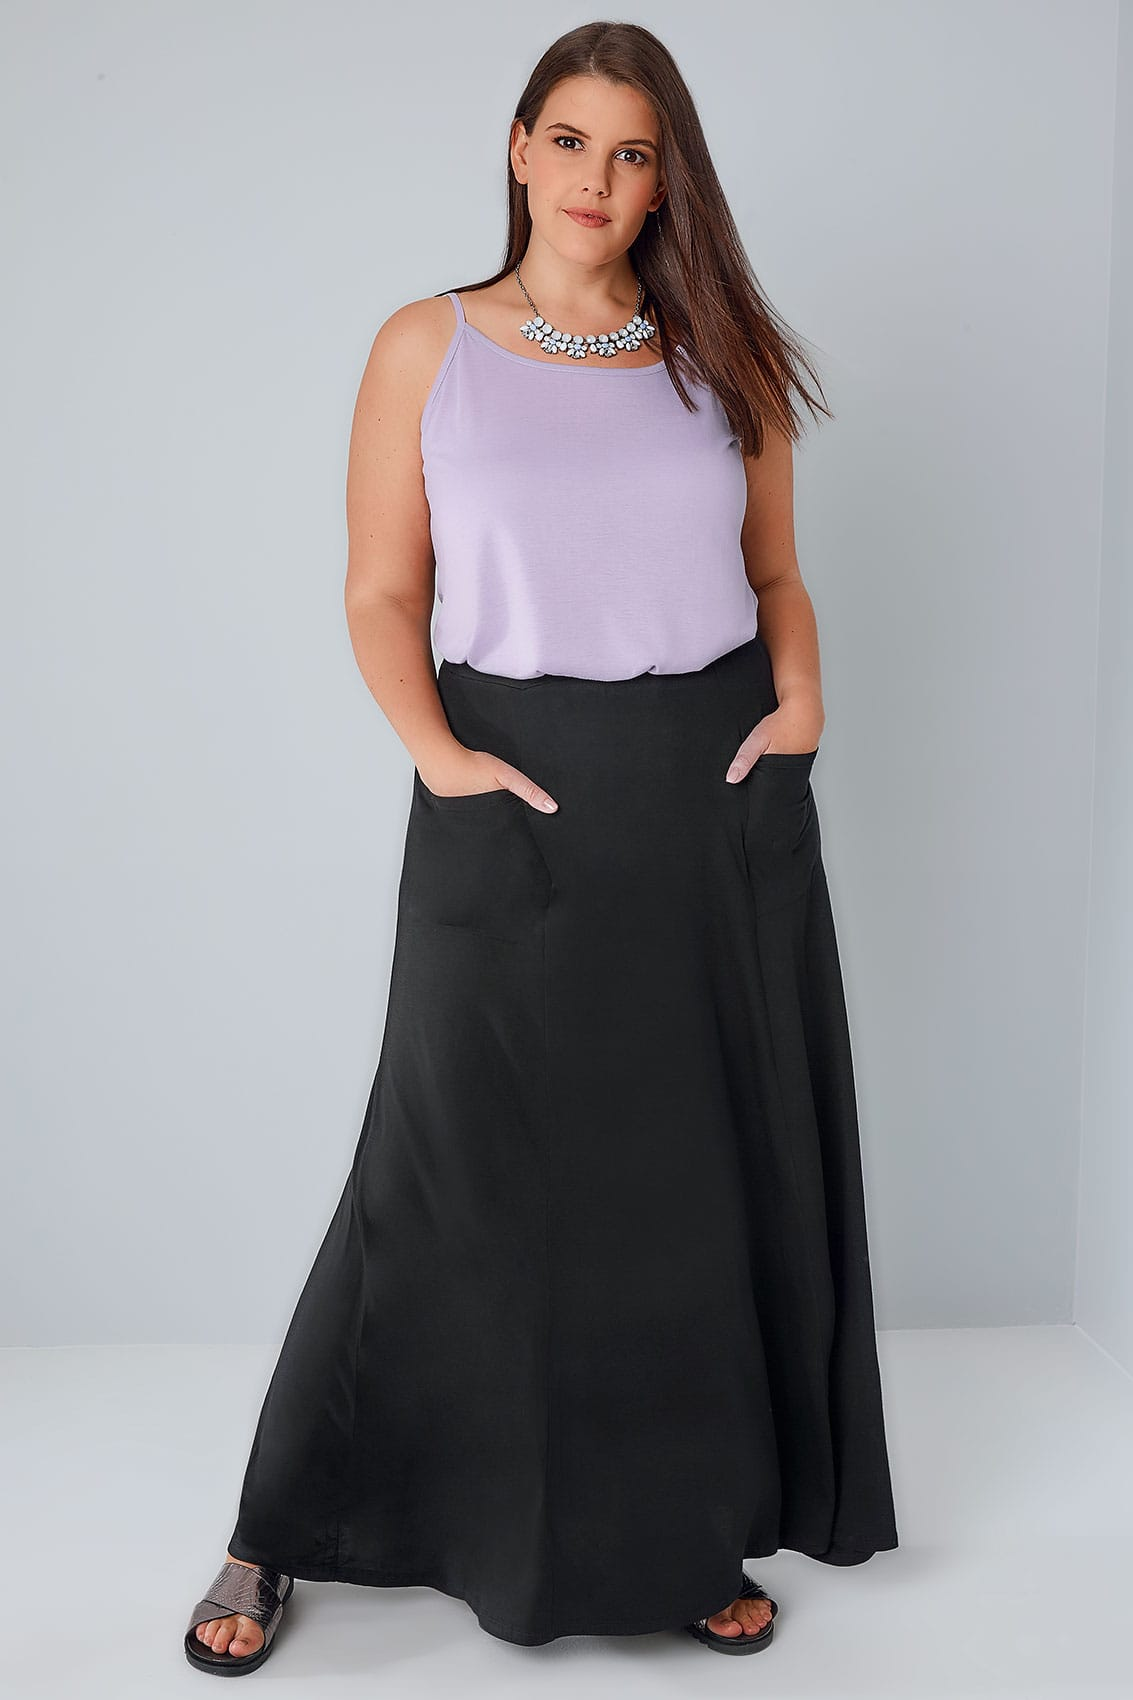 Black Maxi Skirt With Pockets, Plus size 16 to 36